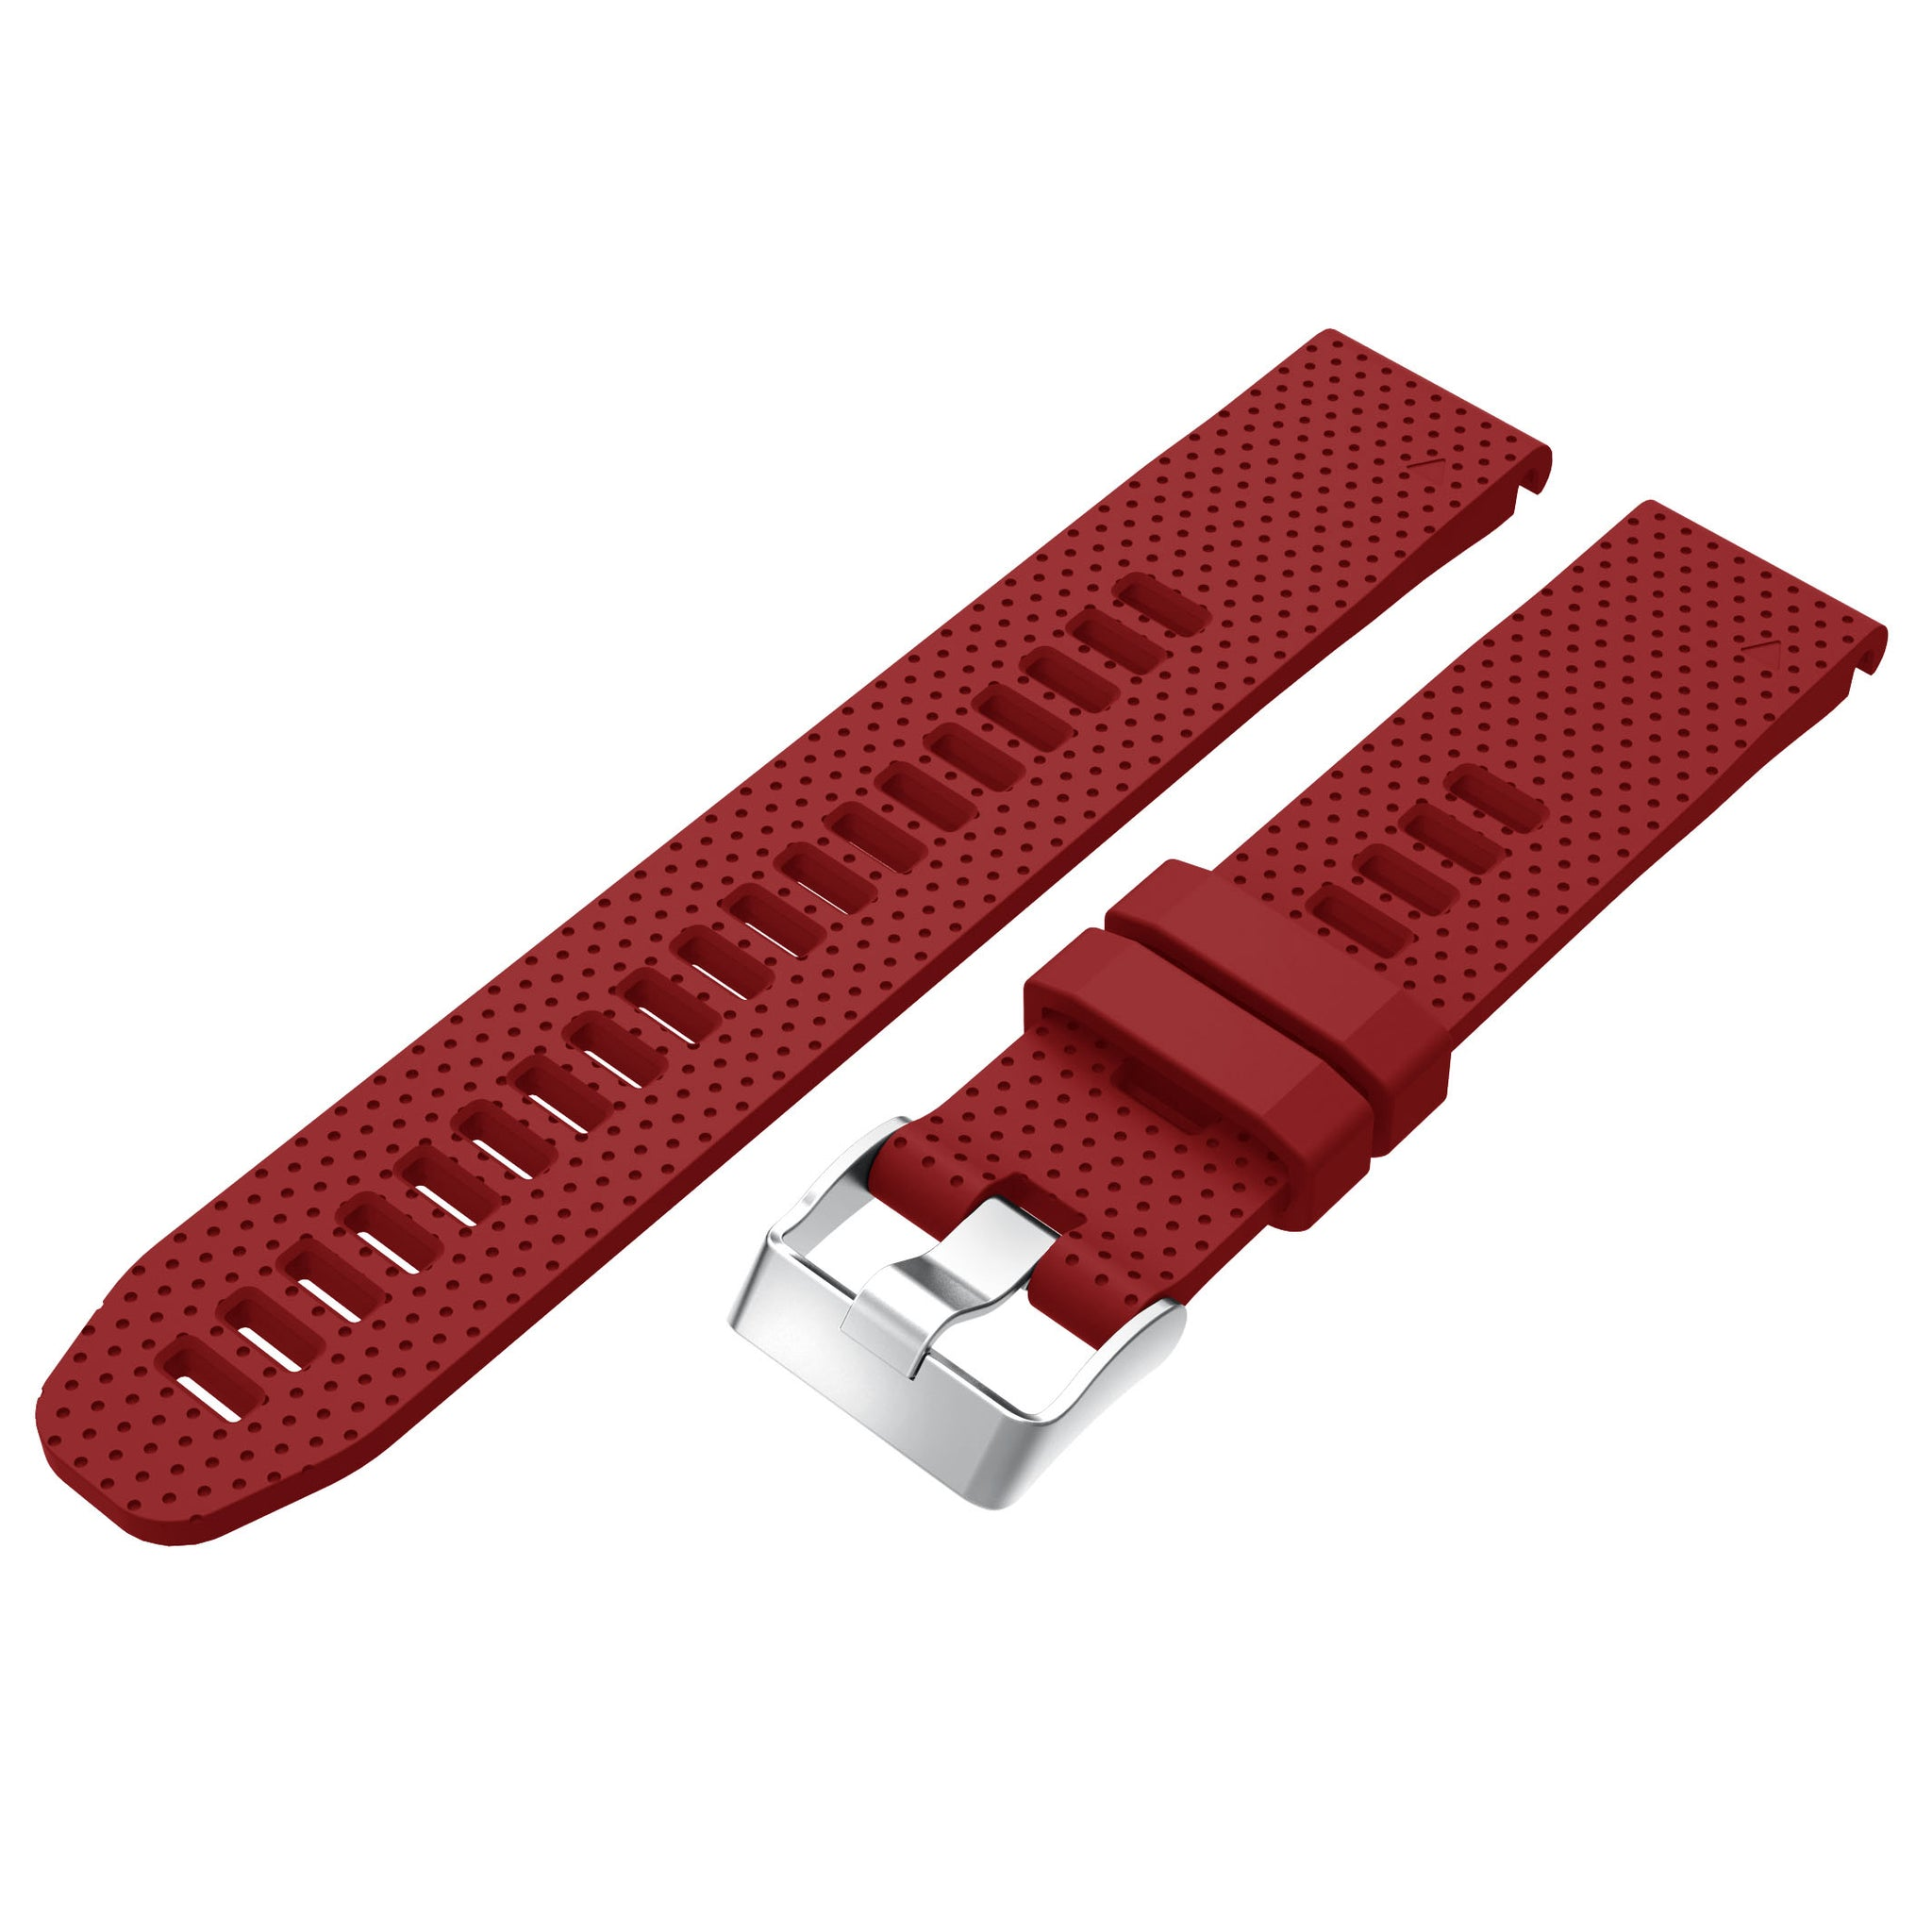 Garmin Fenix 5S 20mm Replacement Silicone Waterproof Quick Fit Watch Strap Wristband for Garmin Fenix 5S